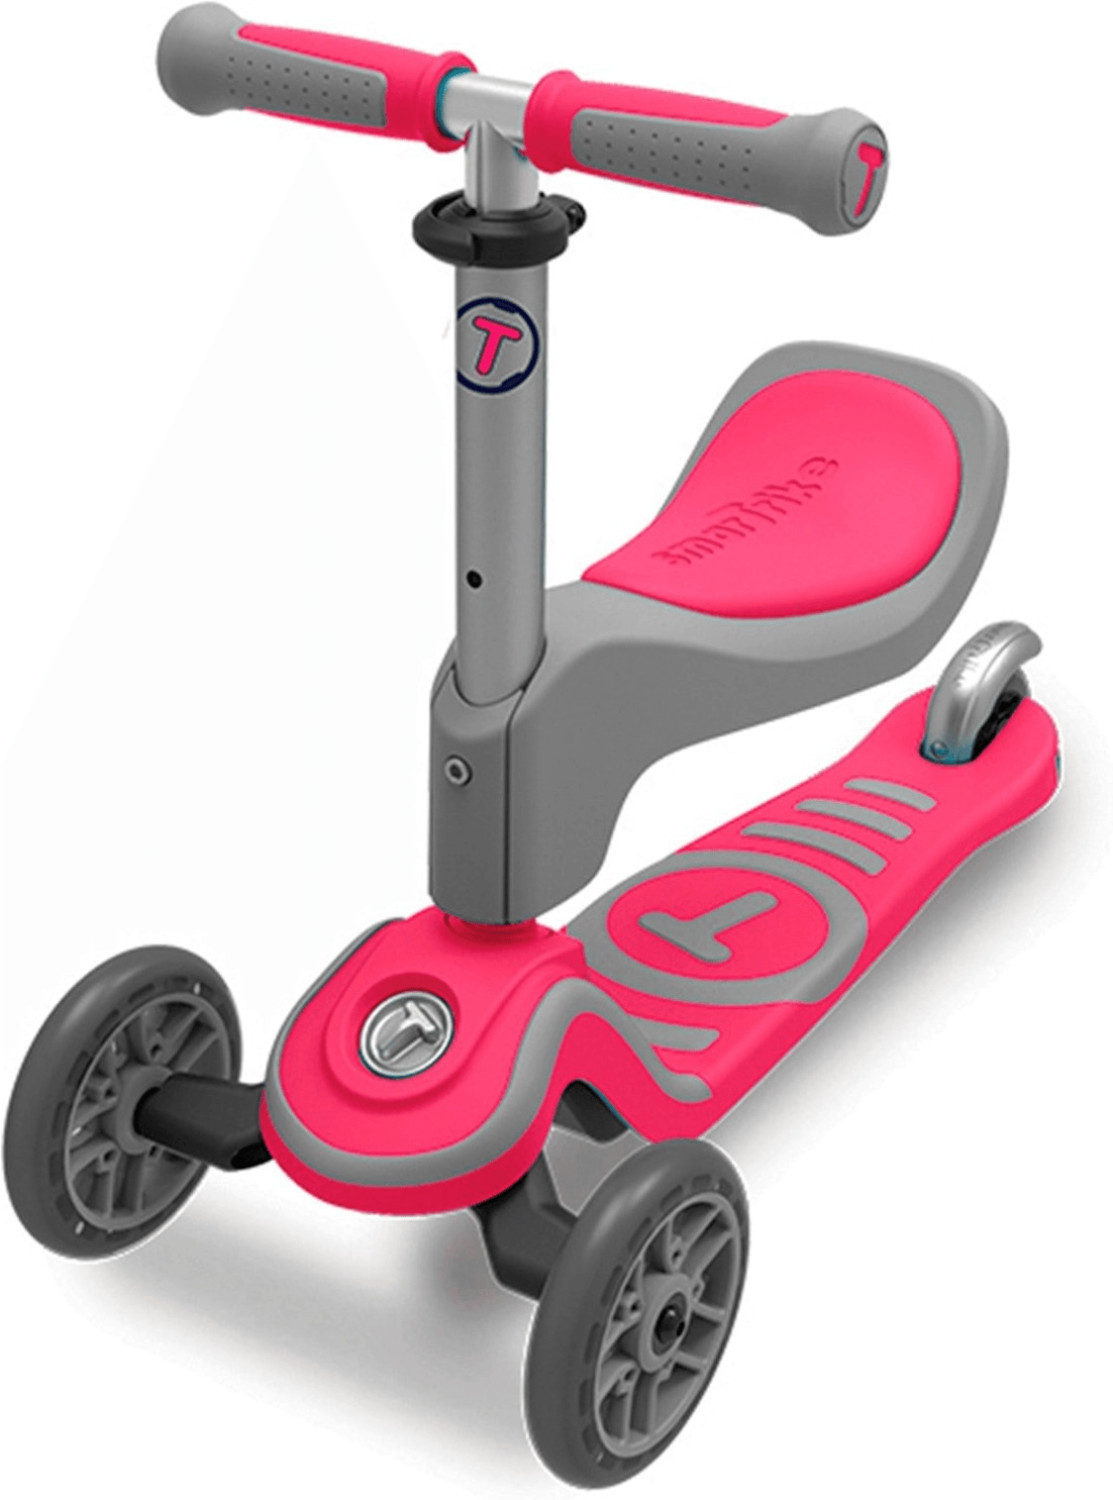 smarTrike T1 Scooter pink